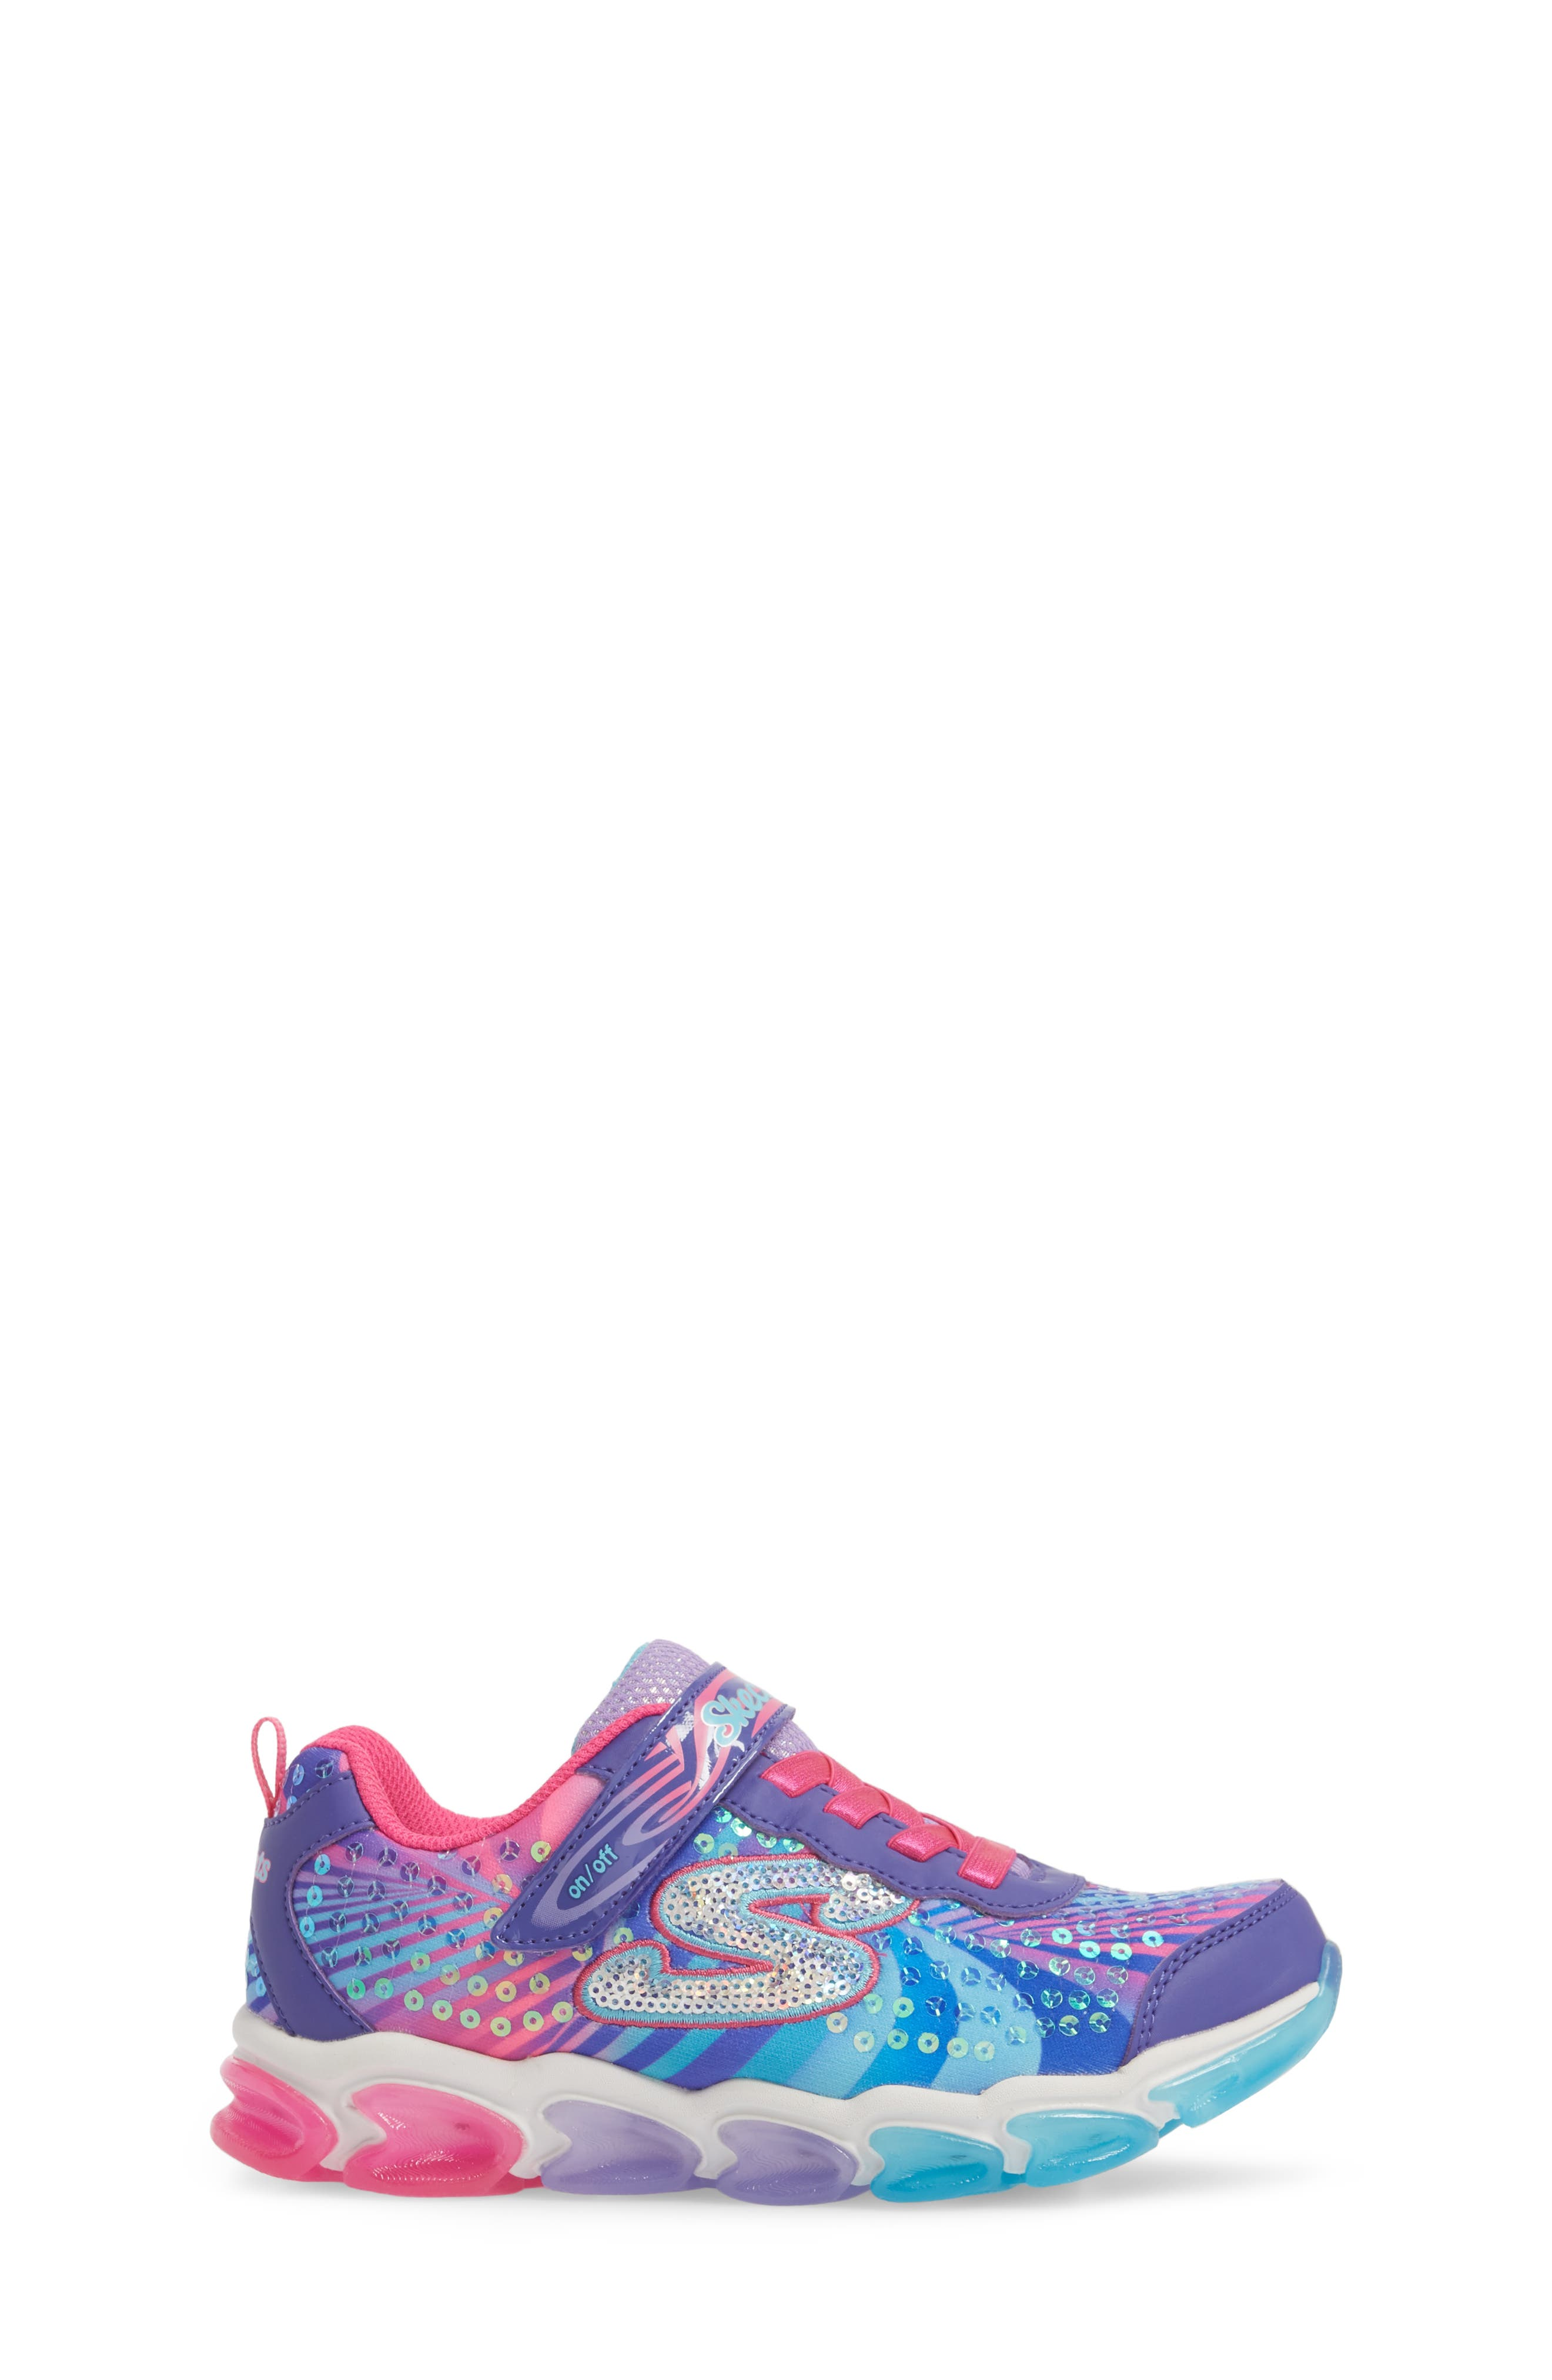 Jelly Beams Light-Up Sneaker,                             Alternate thumbnail 3, color,                             500